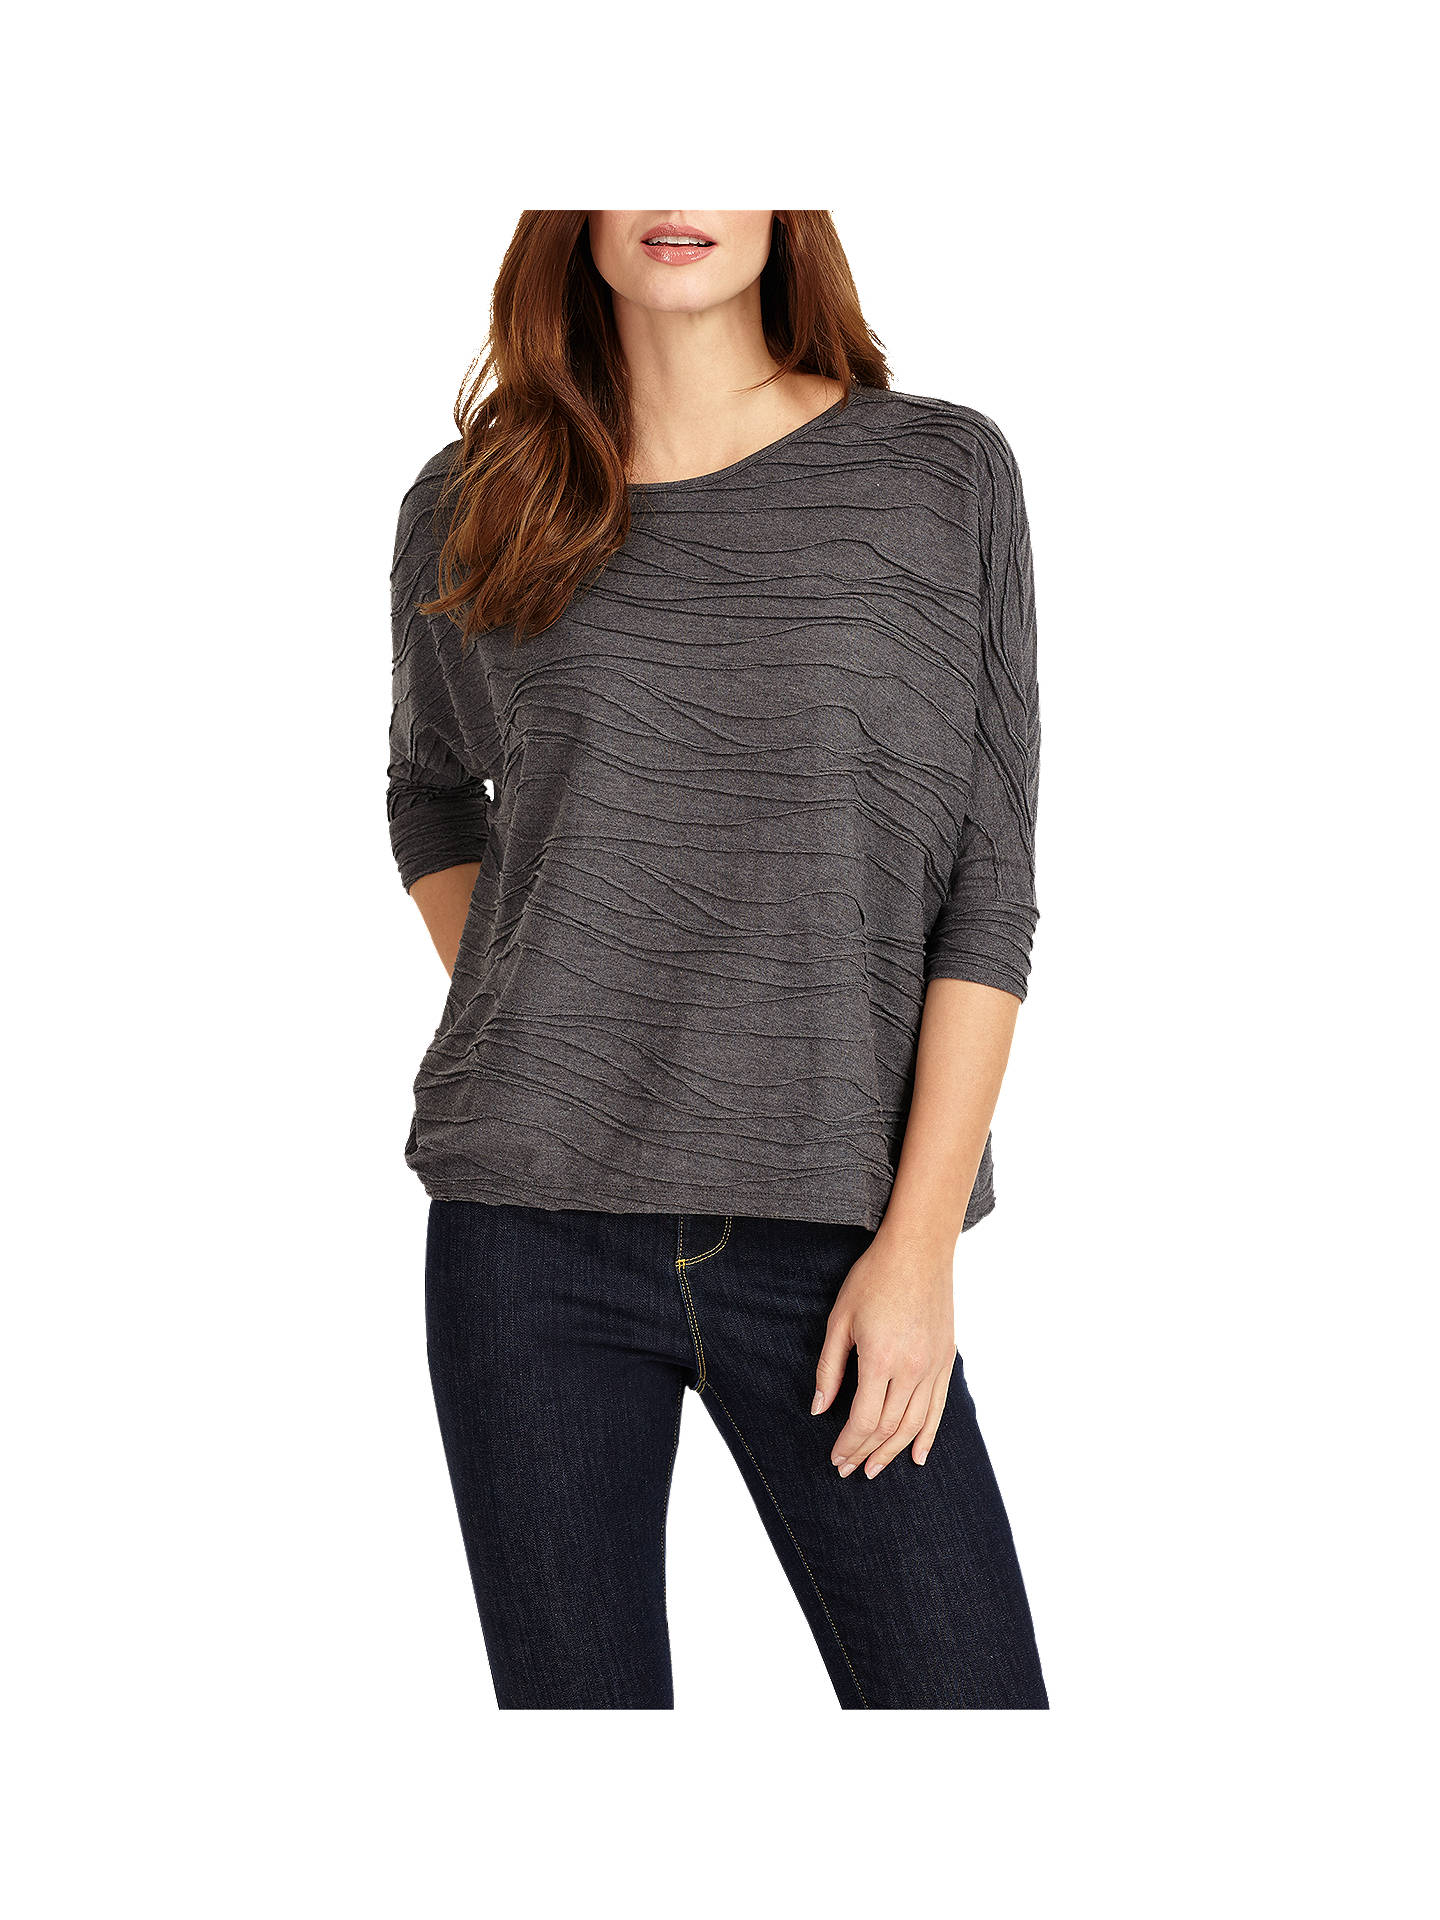 cb01a740c37137 ... Buy Phase Eight Wendy Wave Textured Top, Silver, 8 Online at  johnlewis.com ...